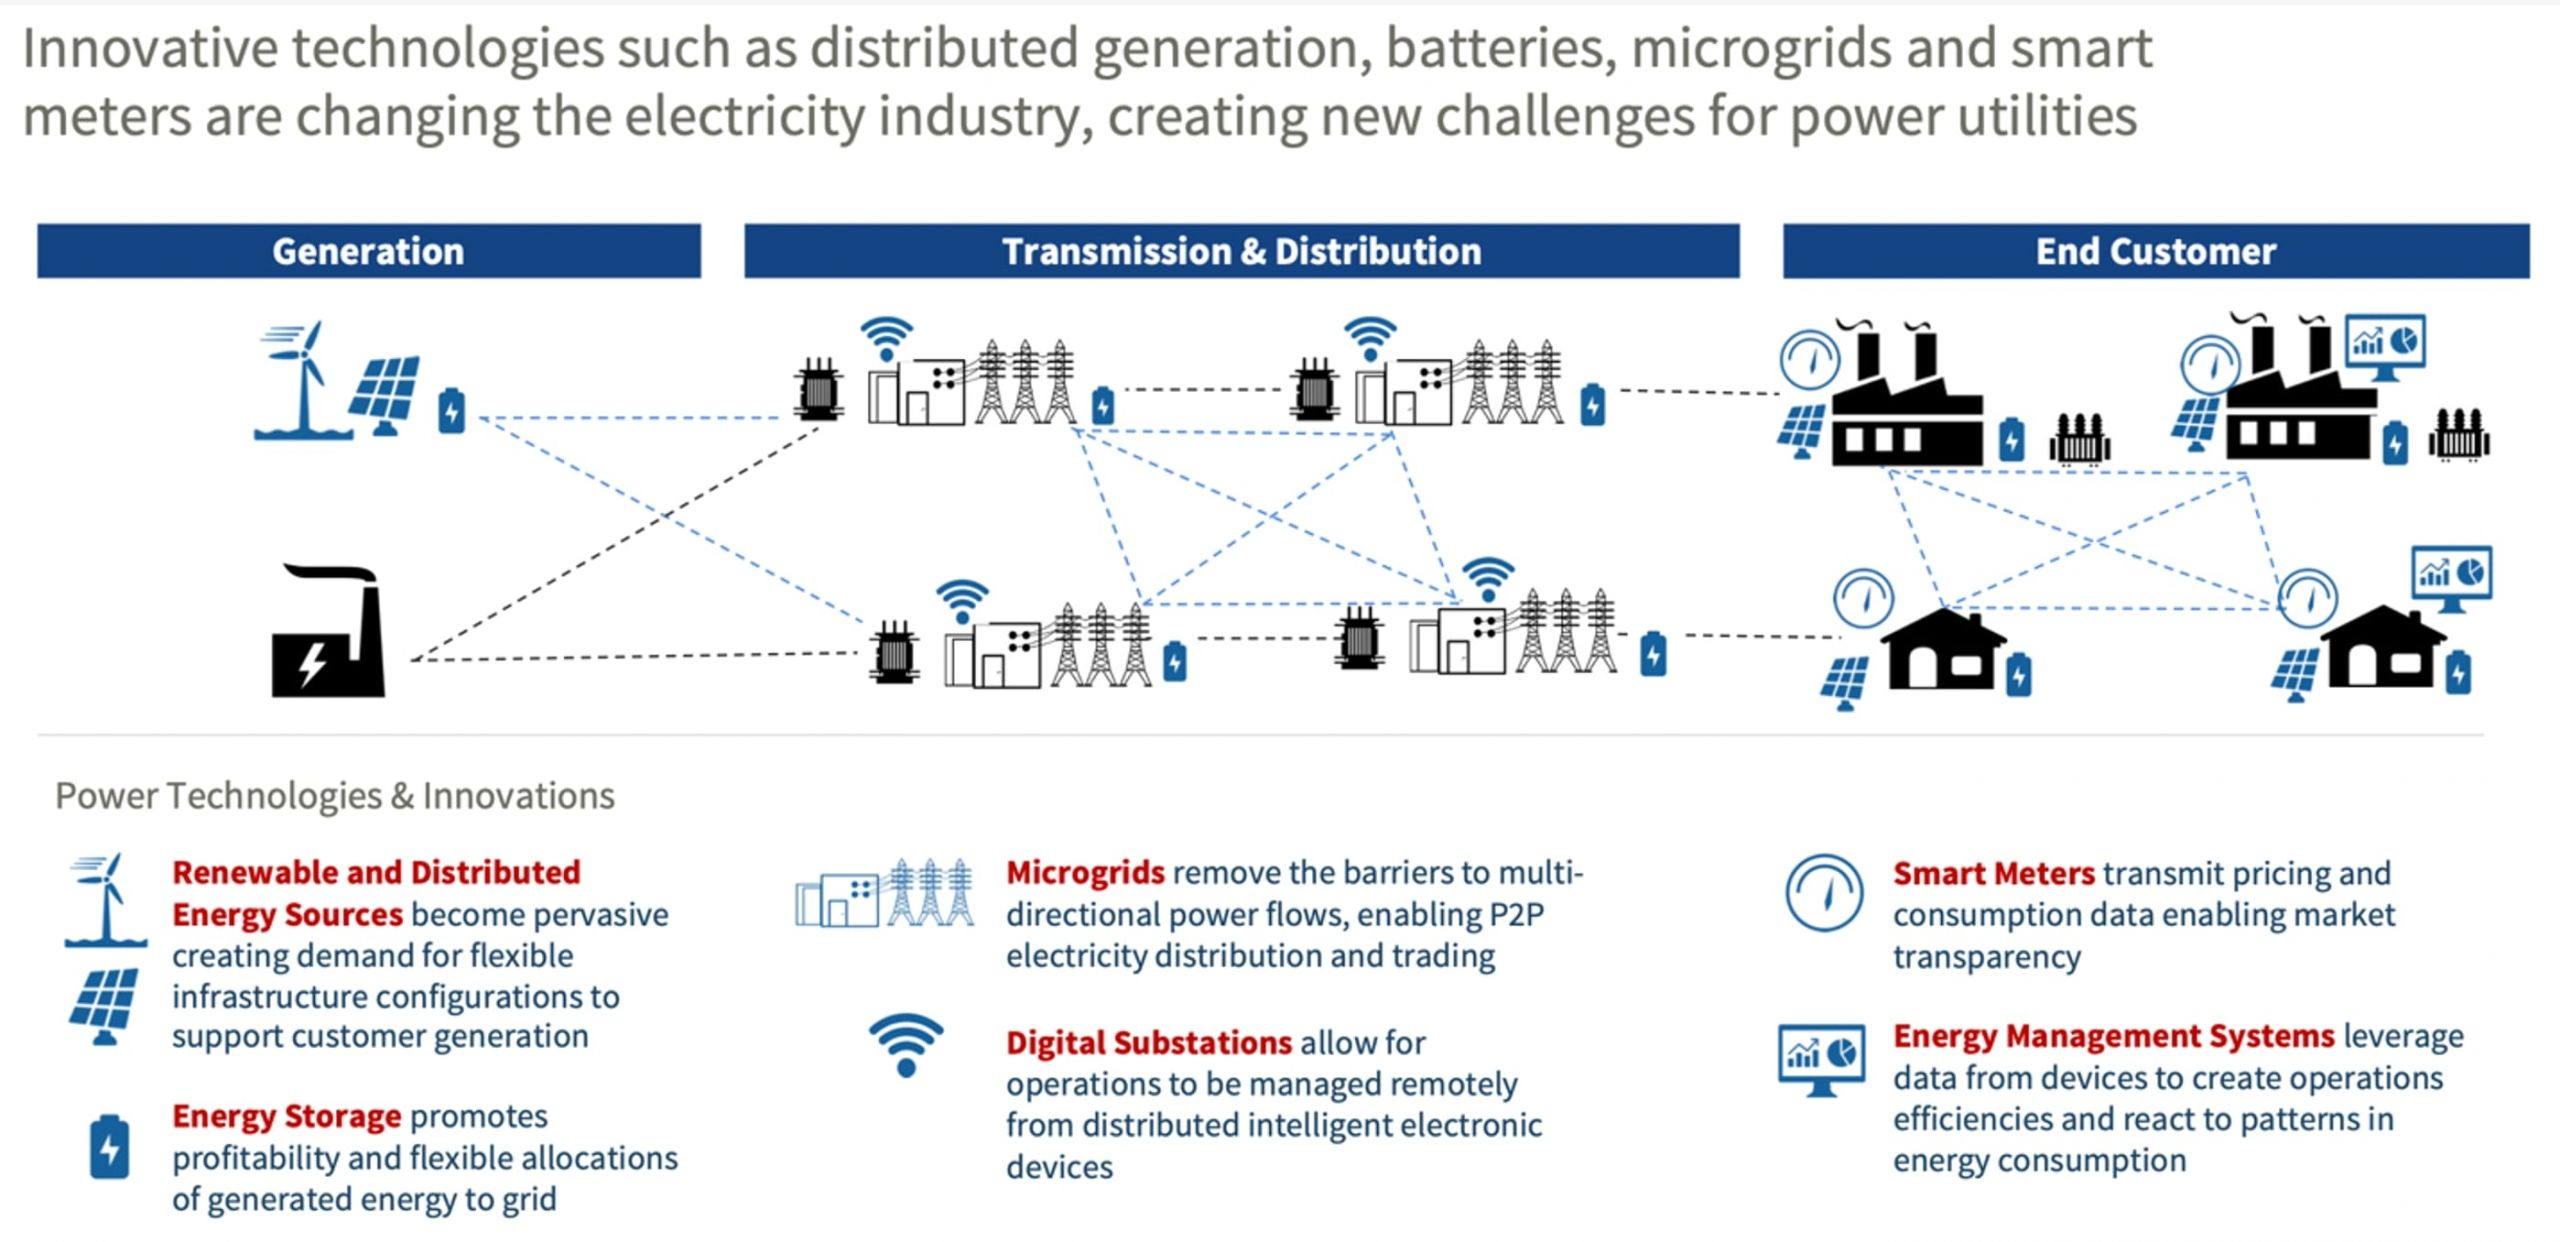 Innovative power technologies are changing the electricity industry